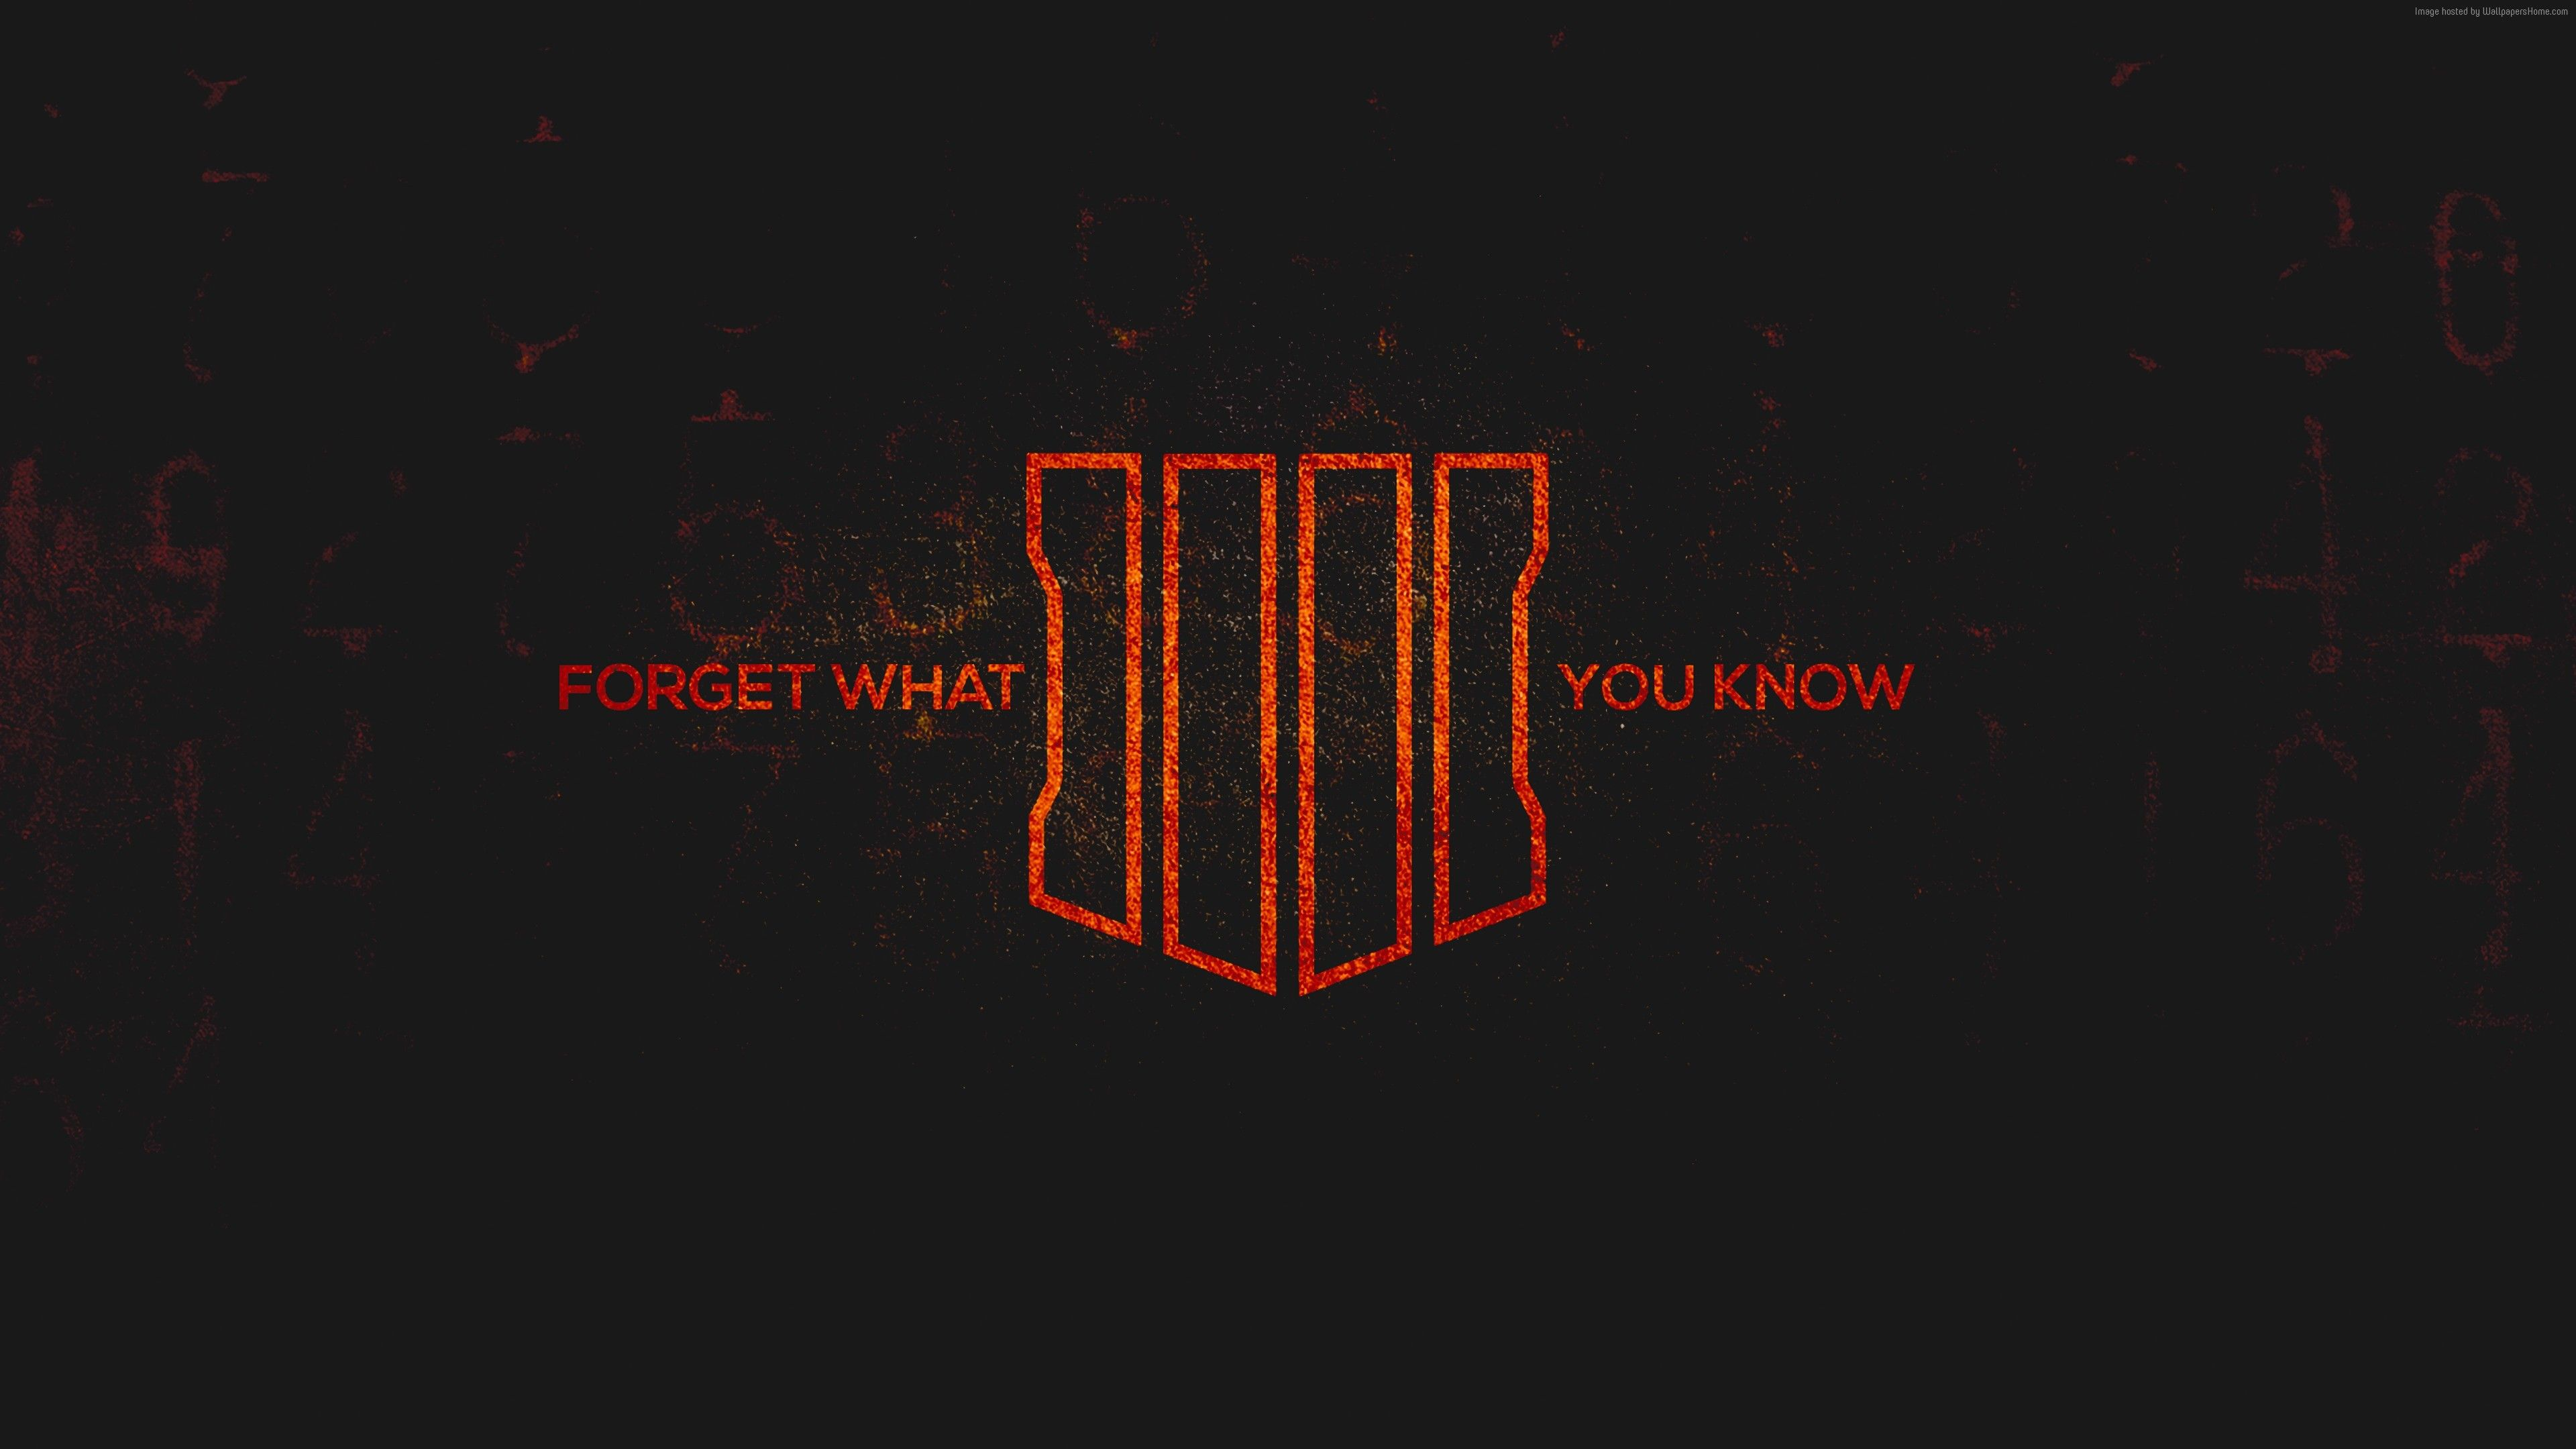 Wallpaper Call Of Duty Black Ops 4 Poster 4k Games Http Www Wallpaperback Net Games Wallpaper Call Of Duty Black Call Of Duty Black Call Of Duty Black Ops